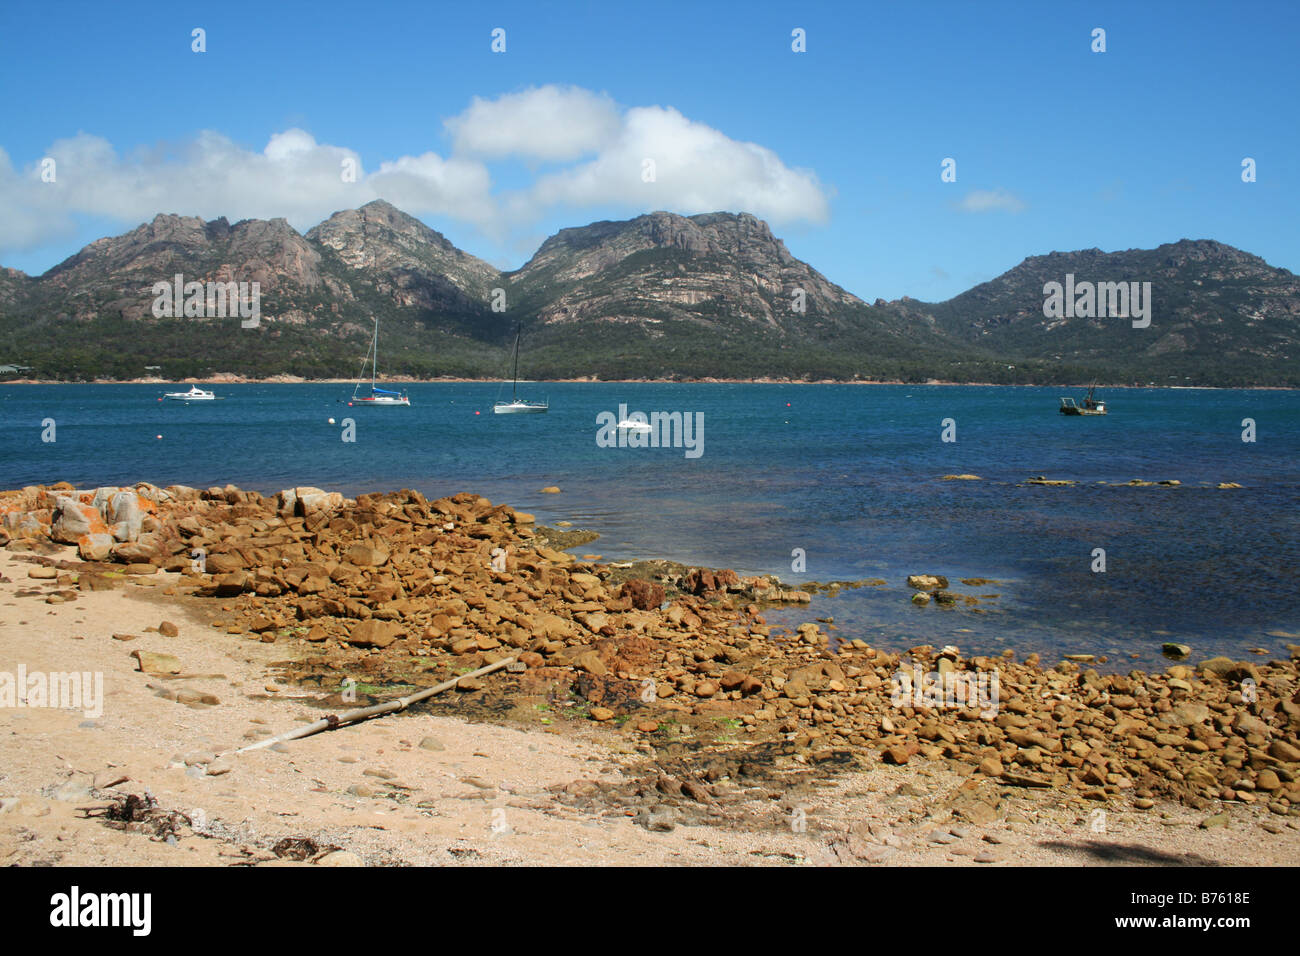 The Hazards as seen from Coles Bay - Stock Image